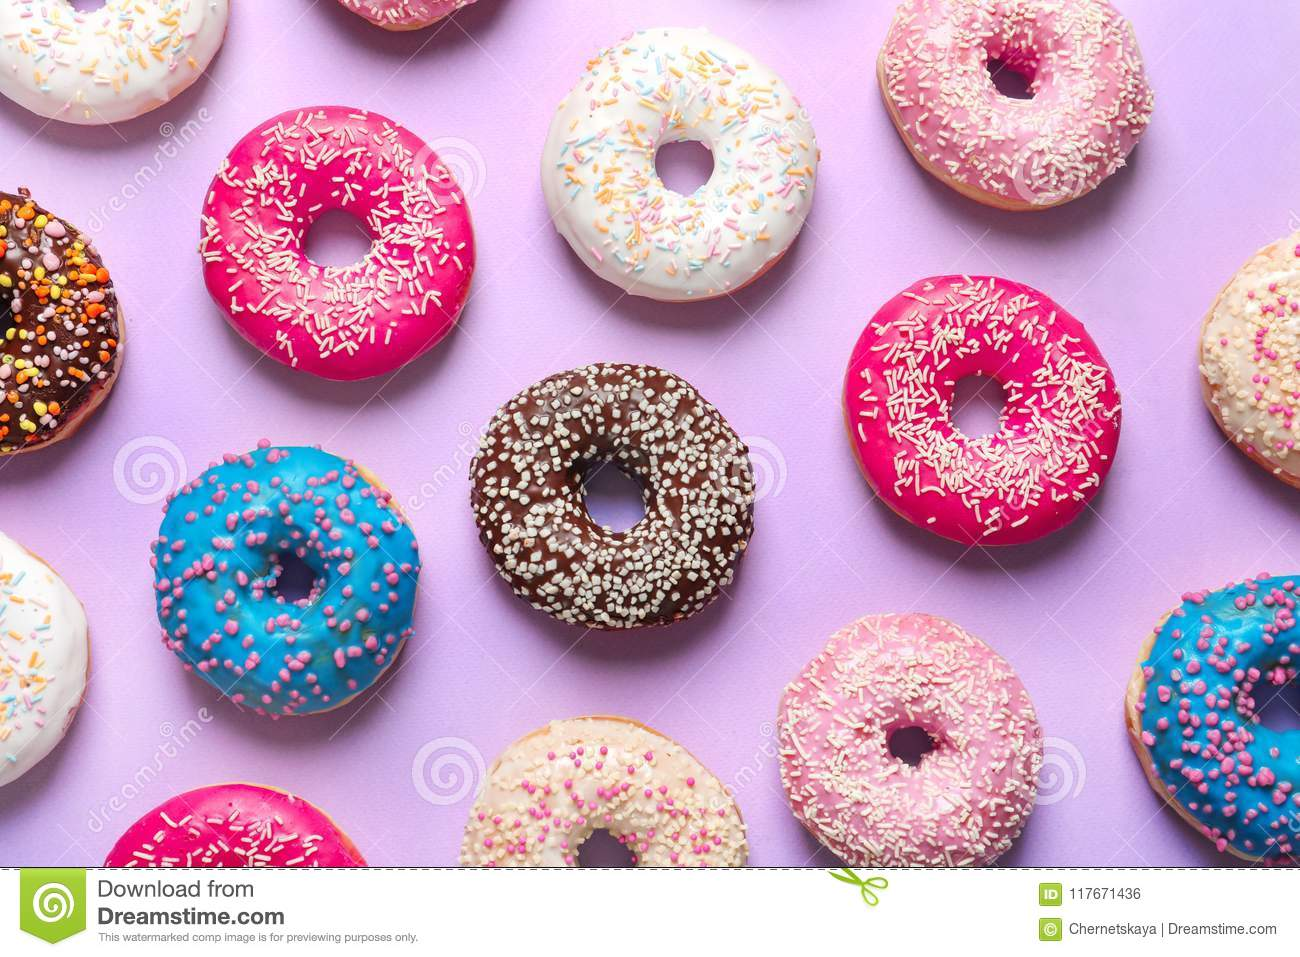 Delicious Doughnuts With Sprinkles Stock Photo - Image of